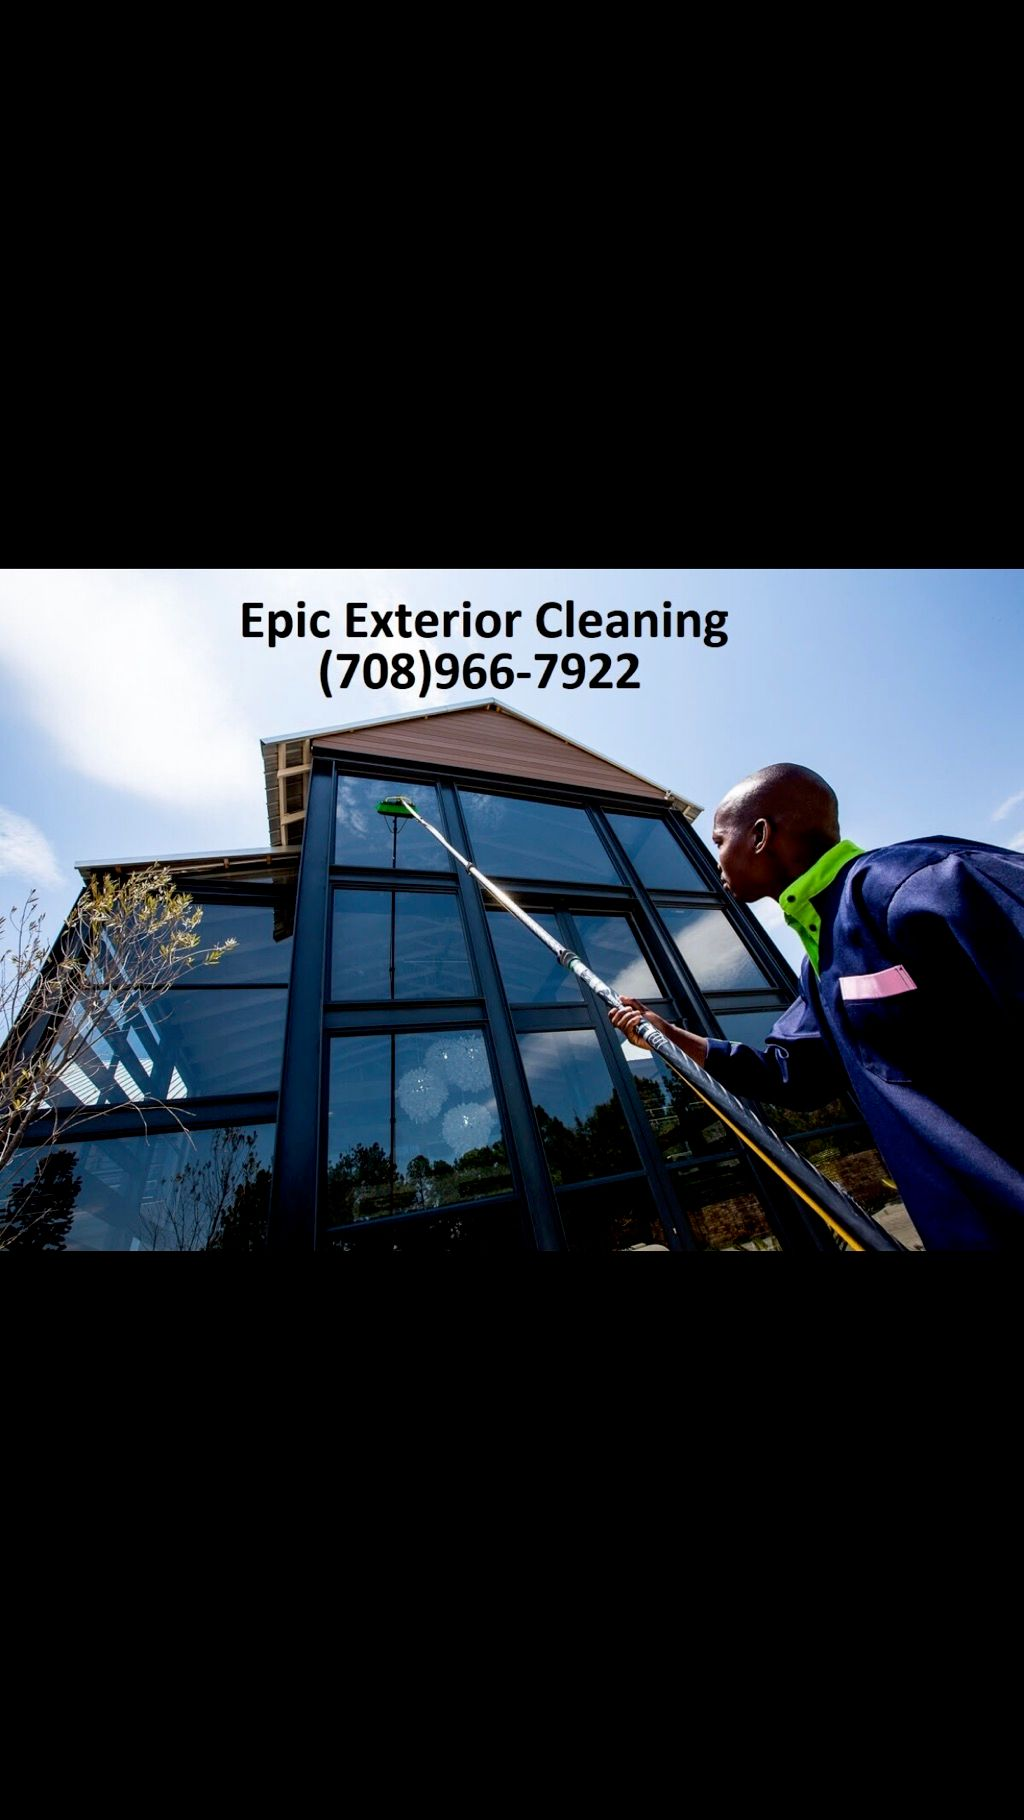 Epic Exterior Cleaning